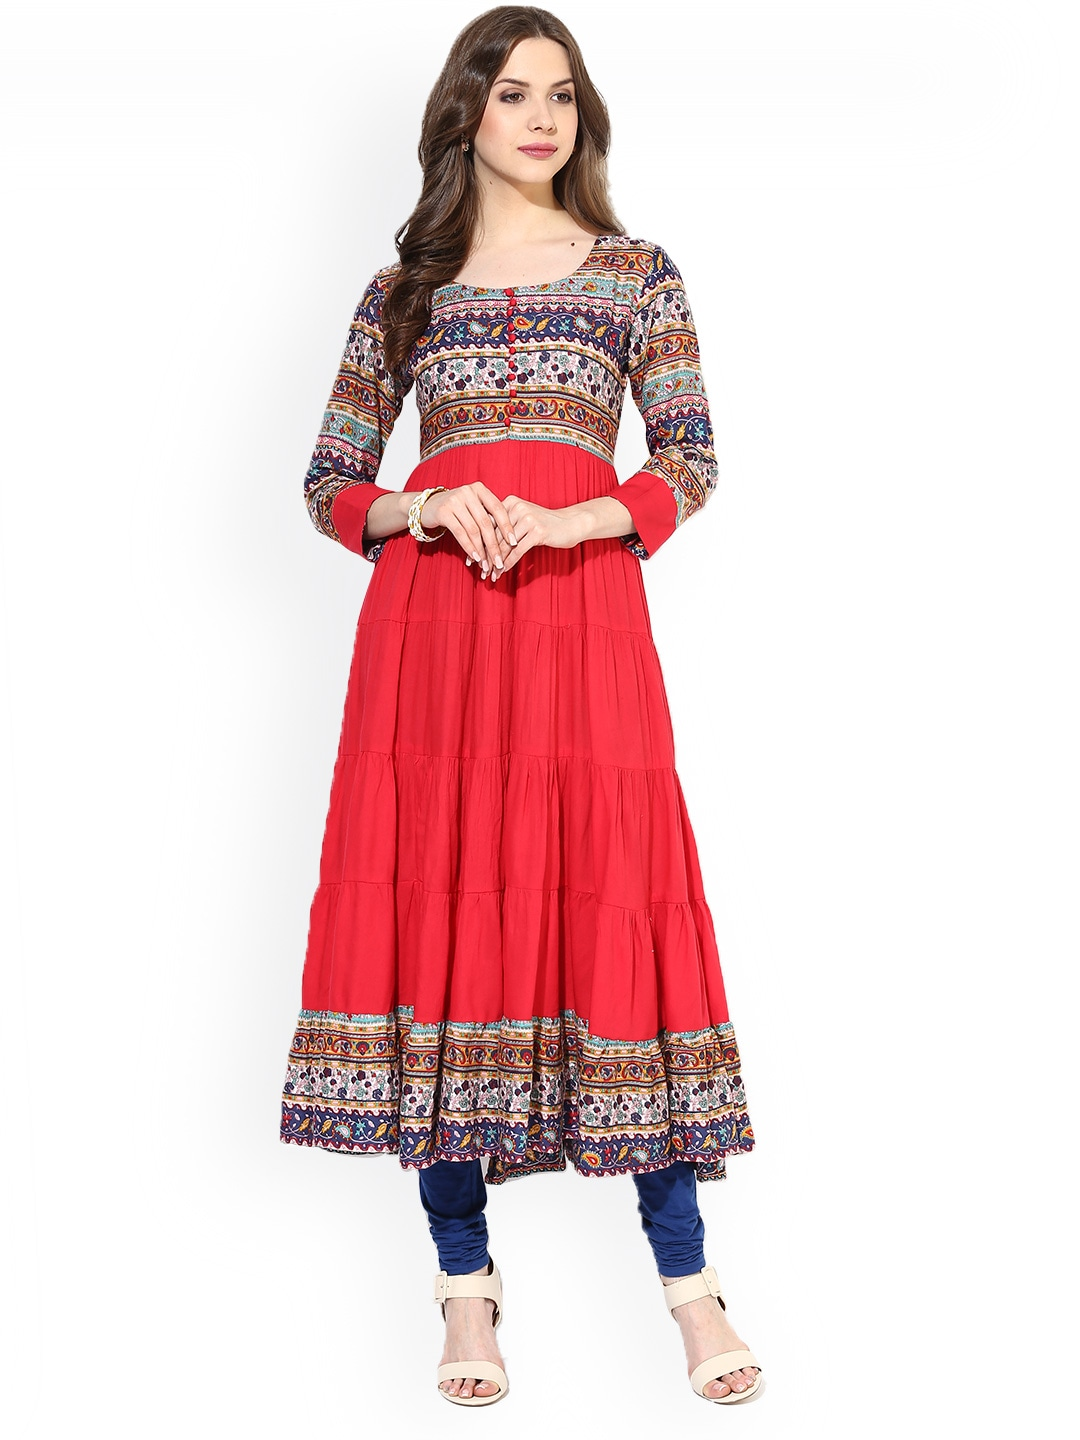 Kurtis & Kurtas Online - Buy Designer Kurtis & Suits for Women